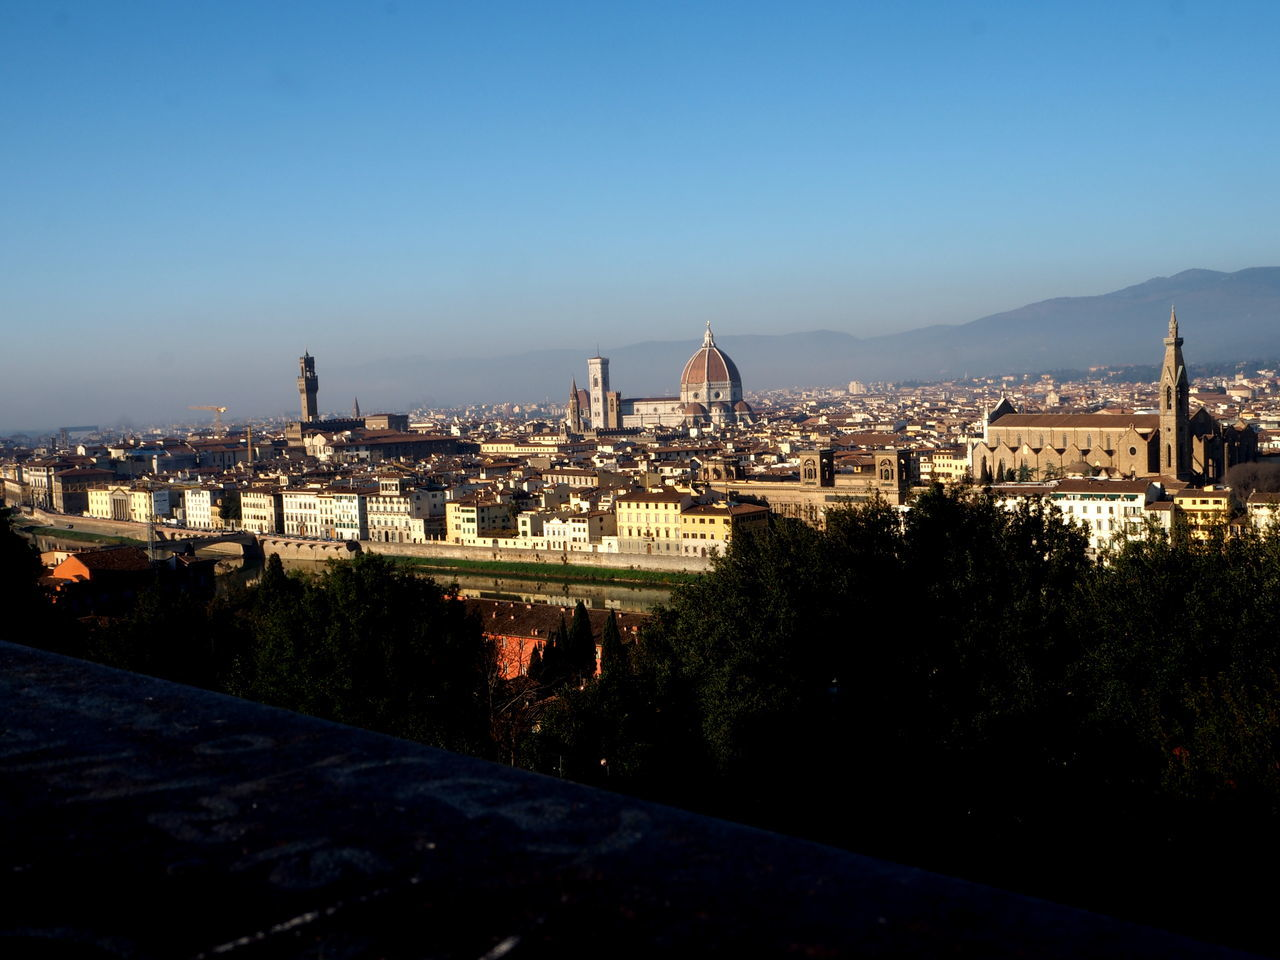 panorama of Florence, Pitti Palace, the cathedral of florence and basilica holy cross Architecture Basilic Bridge Buildings Cathedral City Florence Holy Cross Italy Italy4fun No People Outdoors Picoftheday Pitti Pitti Palace Santa Croce Seagulls Sky Sky And Clouds The Medici Family Tuscany Uffizi Uffizi Gallery Vasari Corridor Water